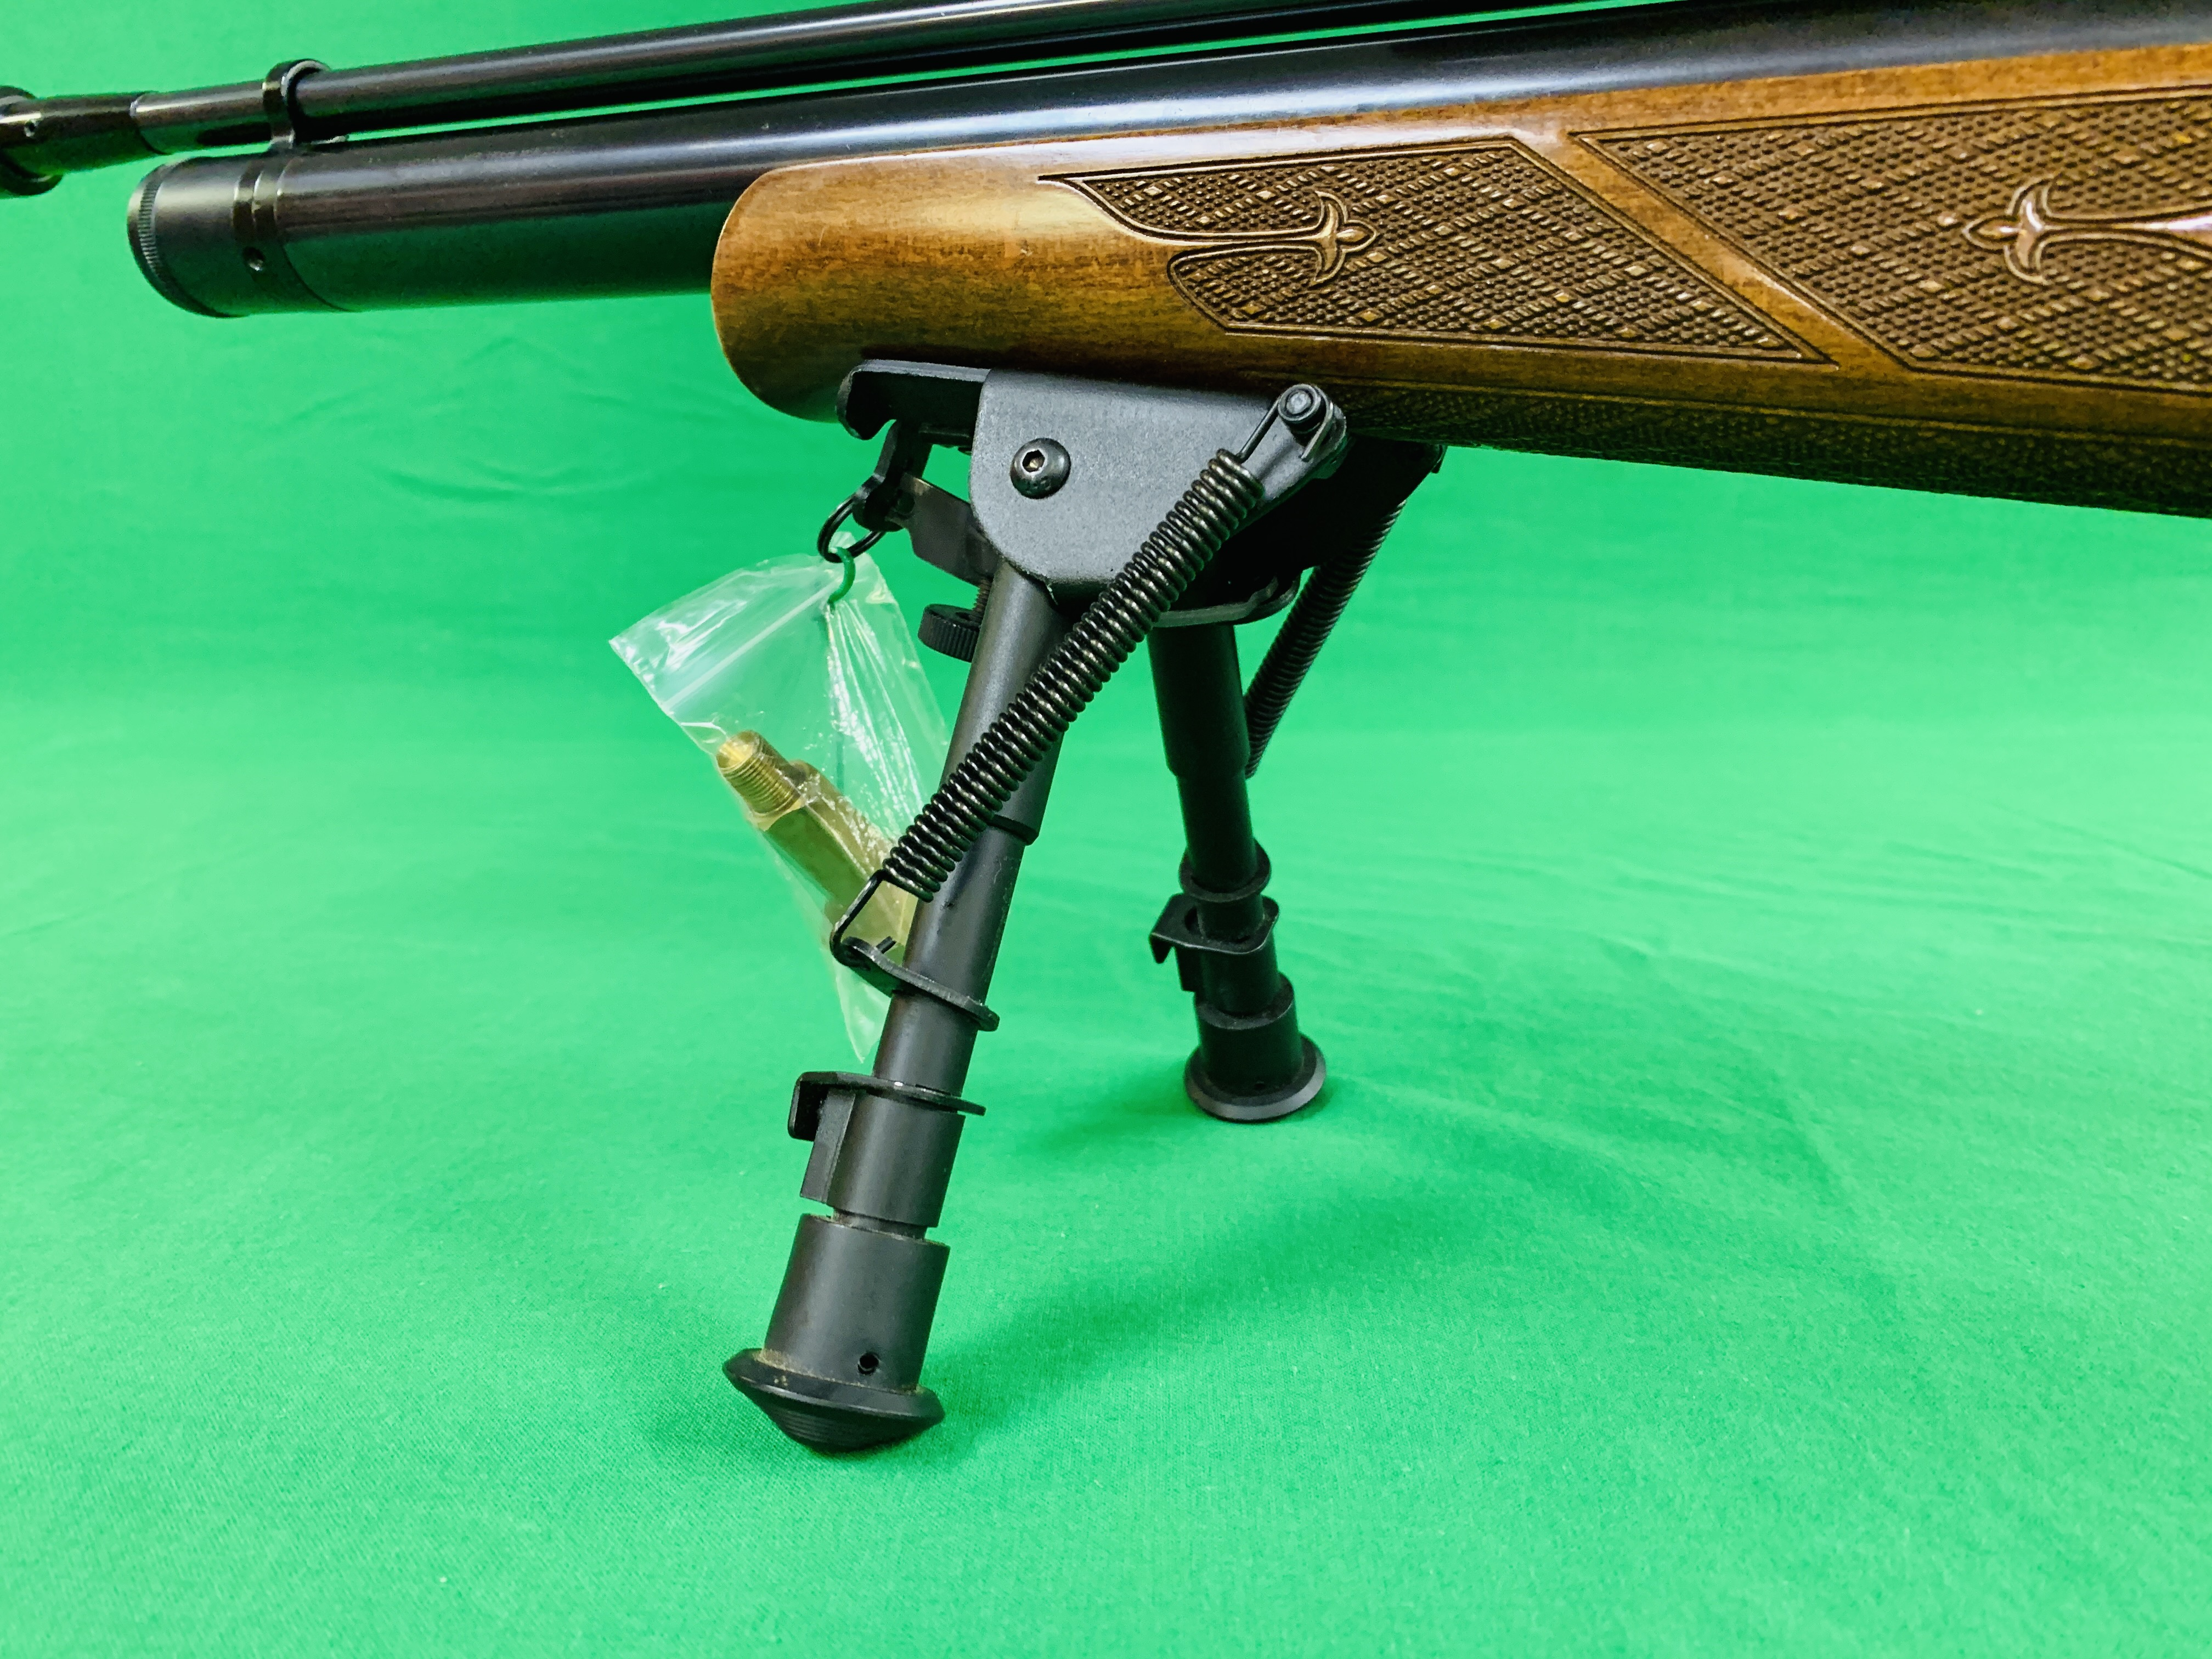 AIR ARMS S400 CLASSIC .177 BOLT ACTION PCP AIR RIFLE FITTED WITH BONUS 6. - Image 5 of 17